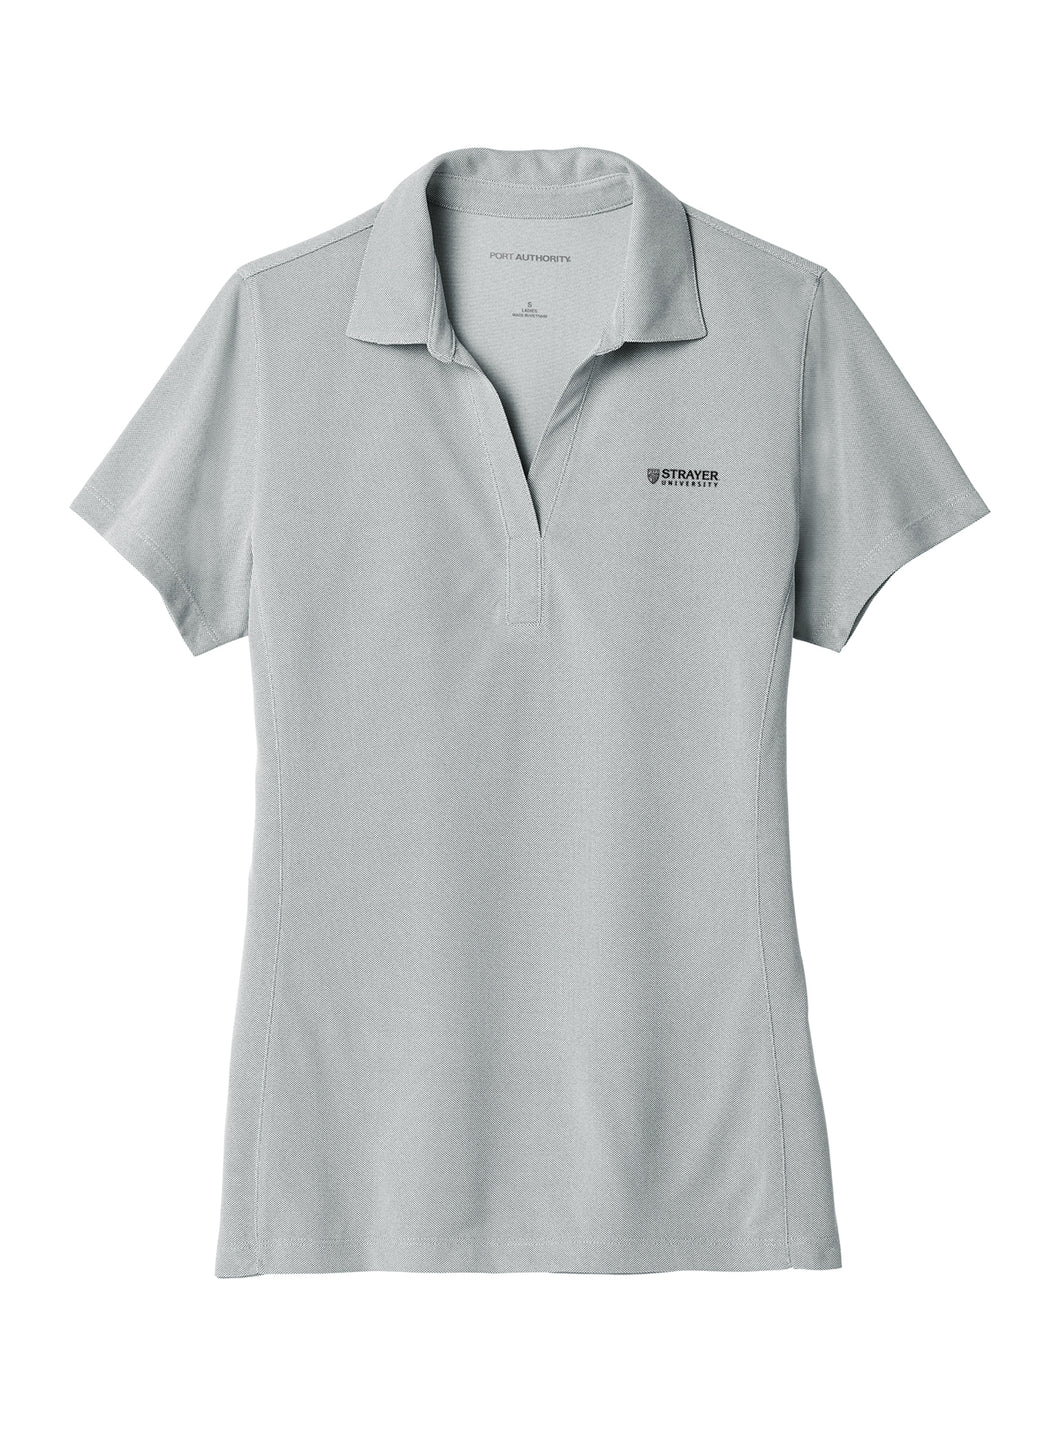 Port Authority Ladies Poly Oxford Pique Polo